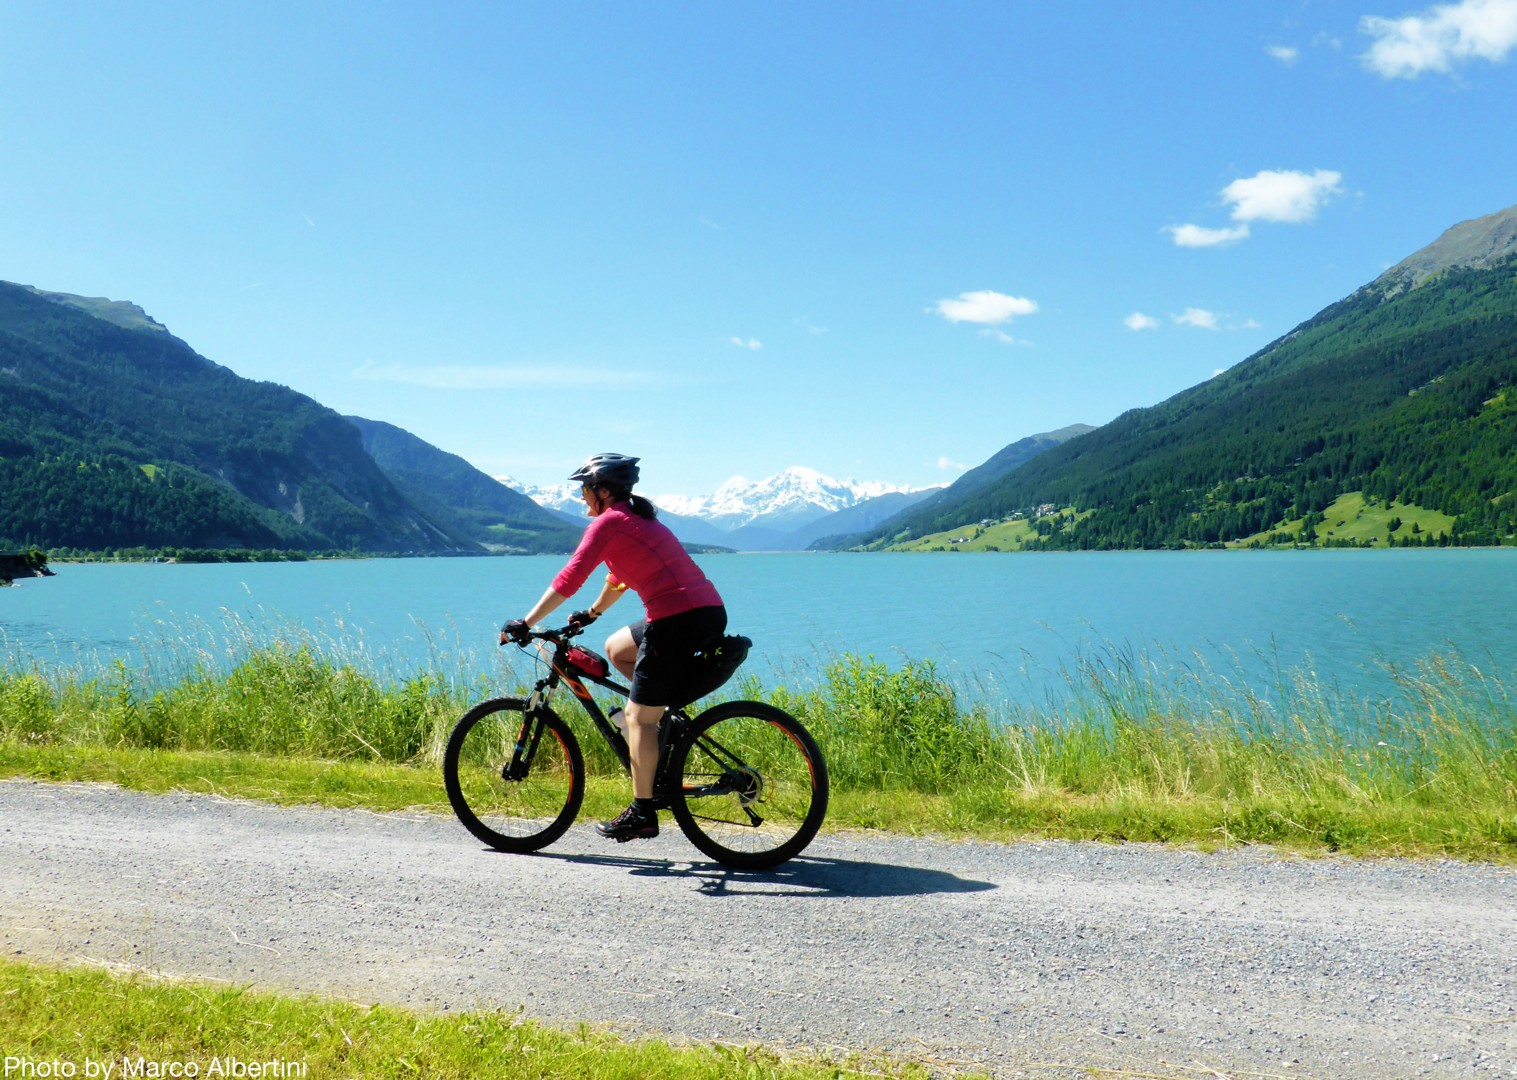 leisurely-self-guided-cycling-trip-italy.jpg - Italy - La Via Claudia - Self-Guided Leisure Cycling Holiday - Leisure Cycling